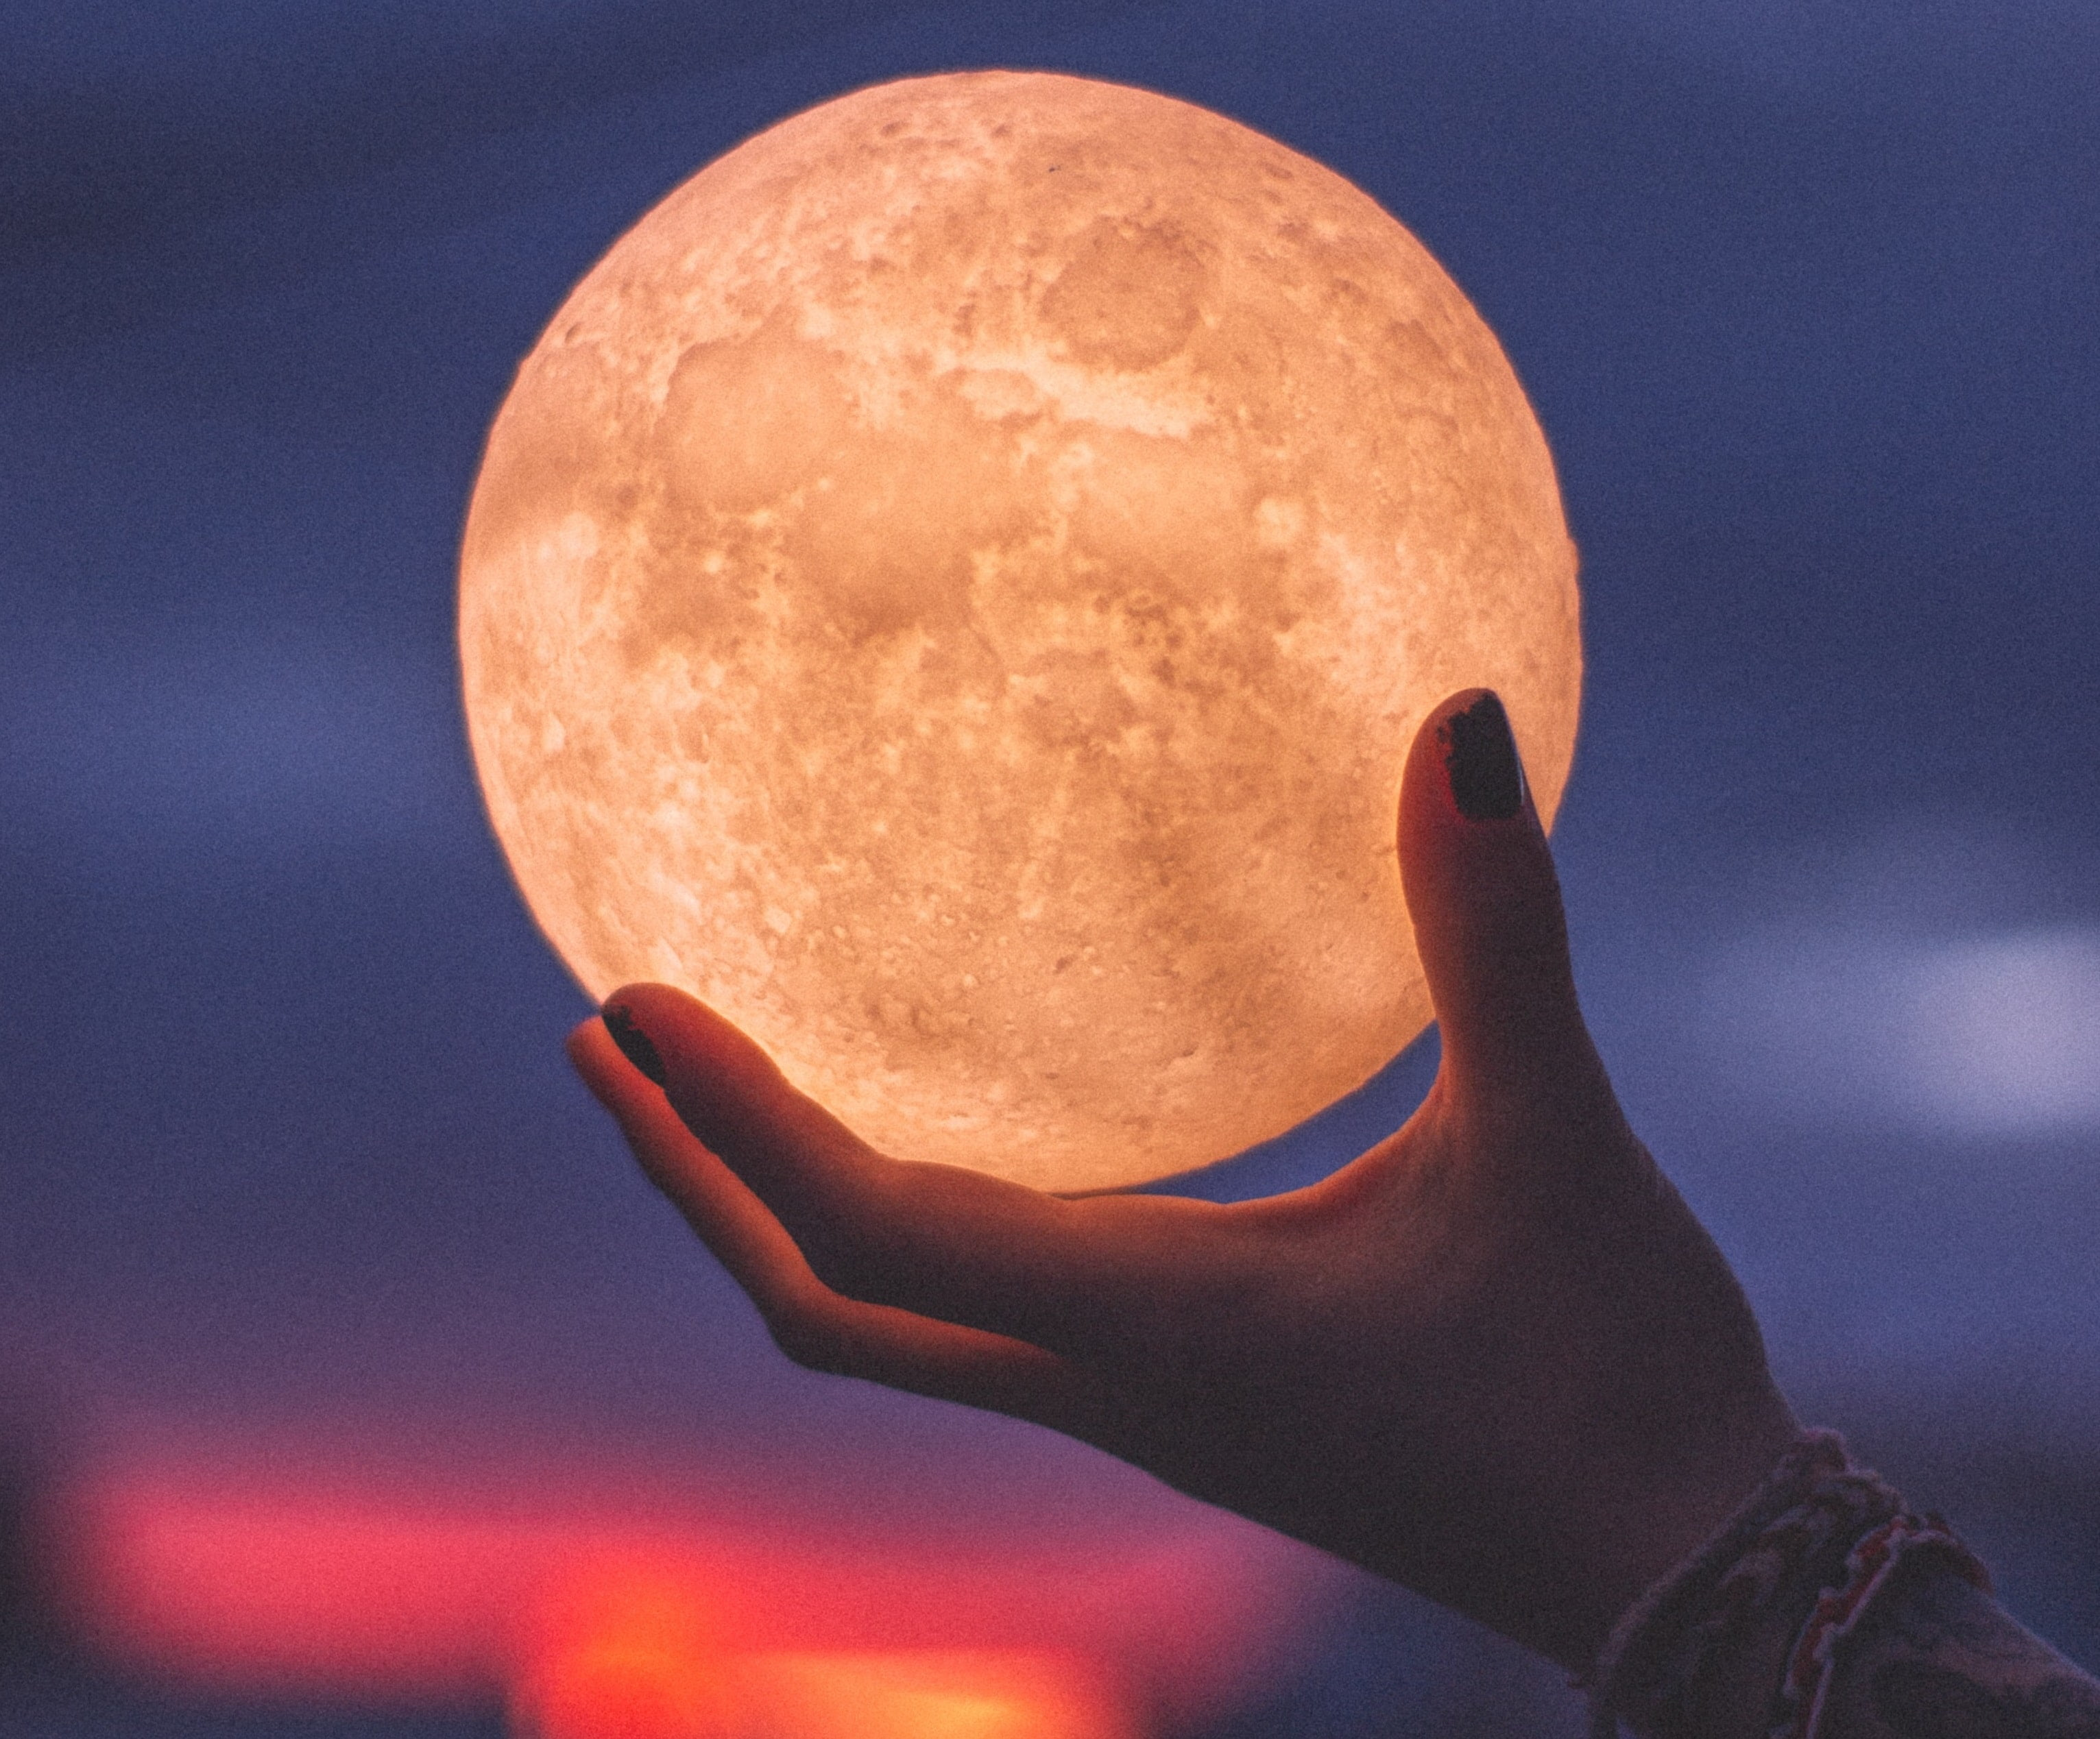 woman's hand holding a full moon nightlight